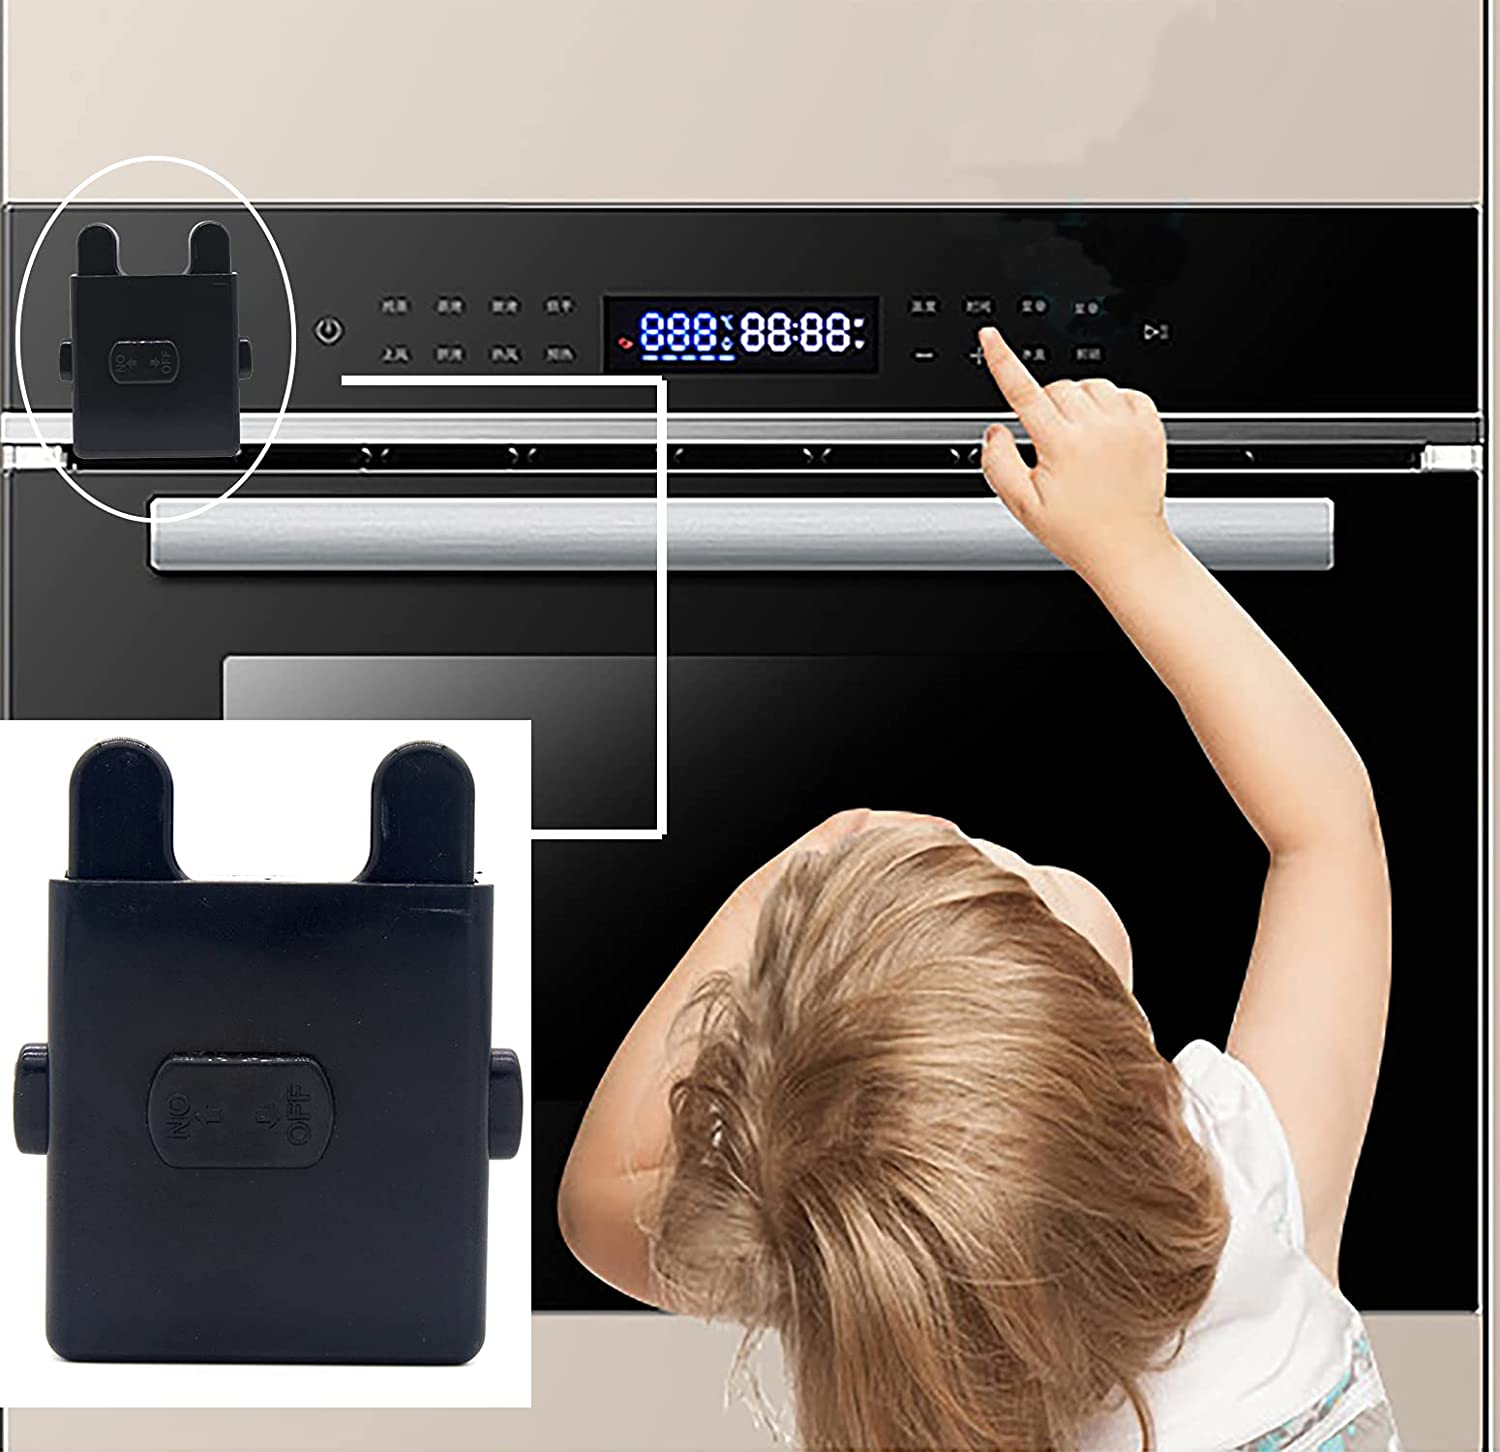 majowir Oven Door Lock Child Safety Heat-Resistant Oven Front Lock for Kids Use Adhesive No Screws or Drill